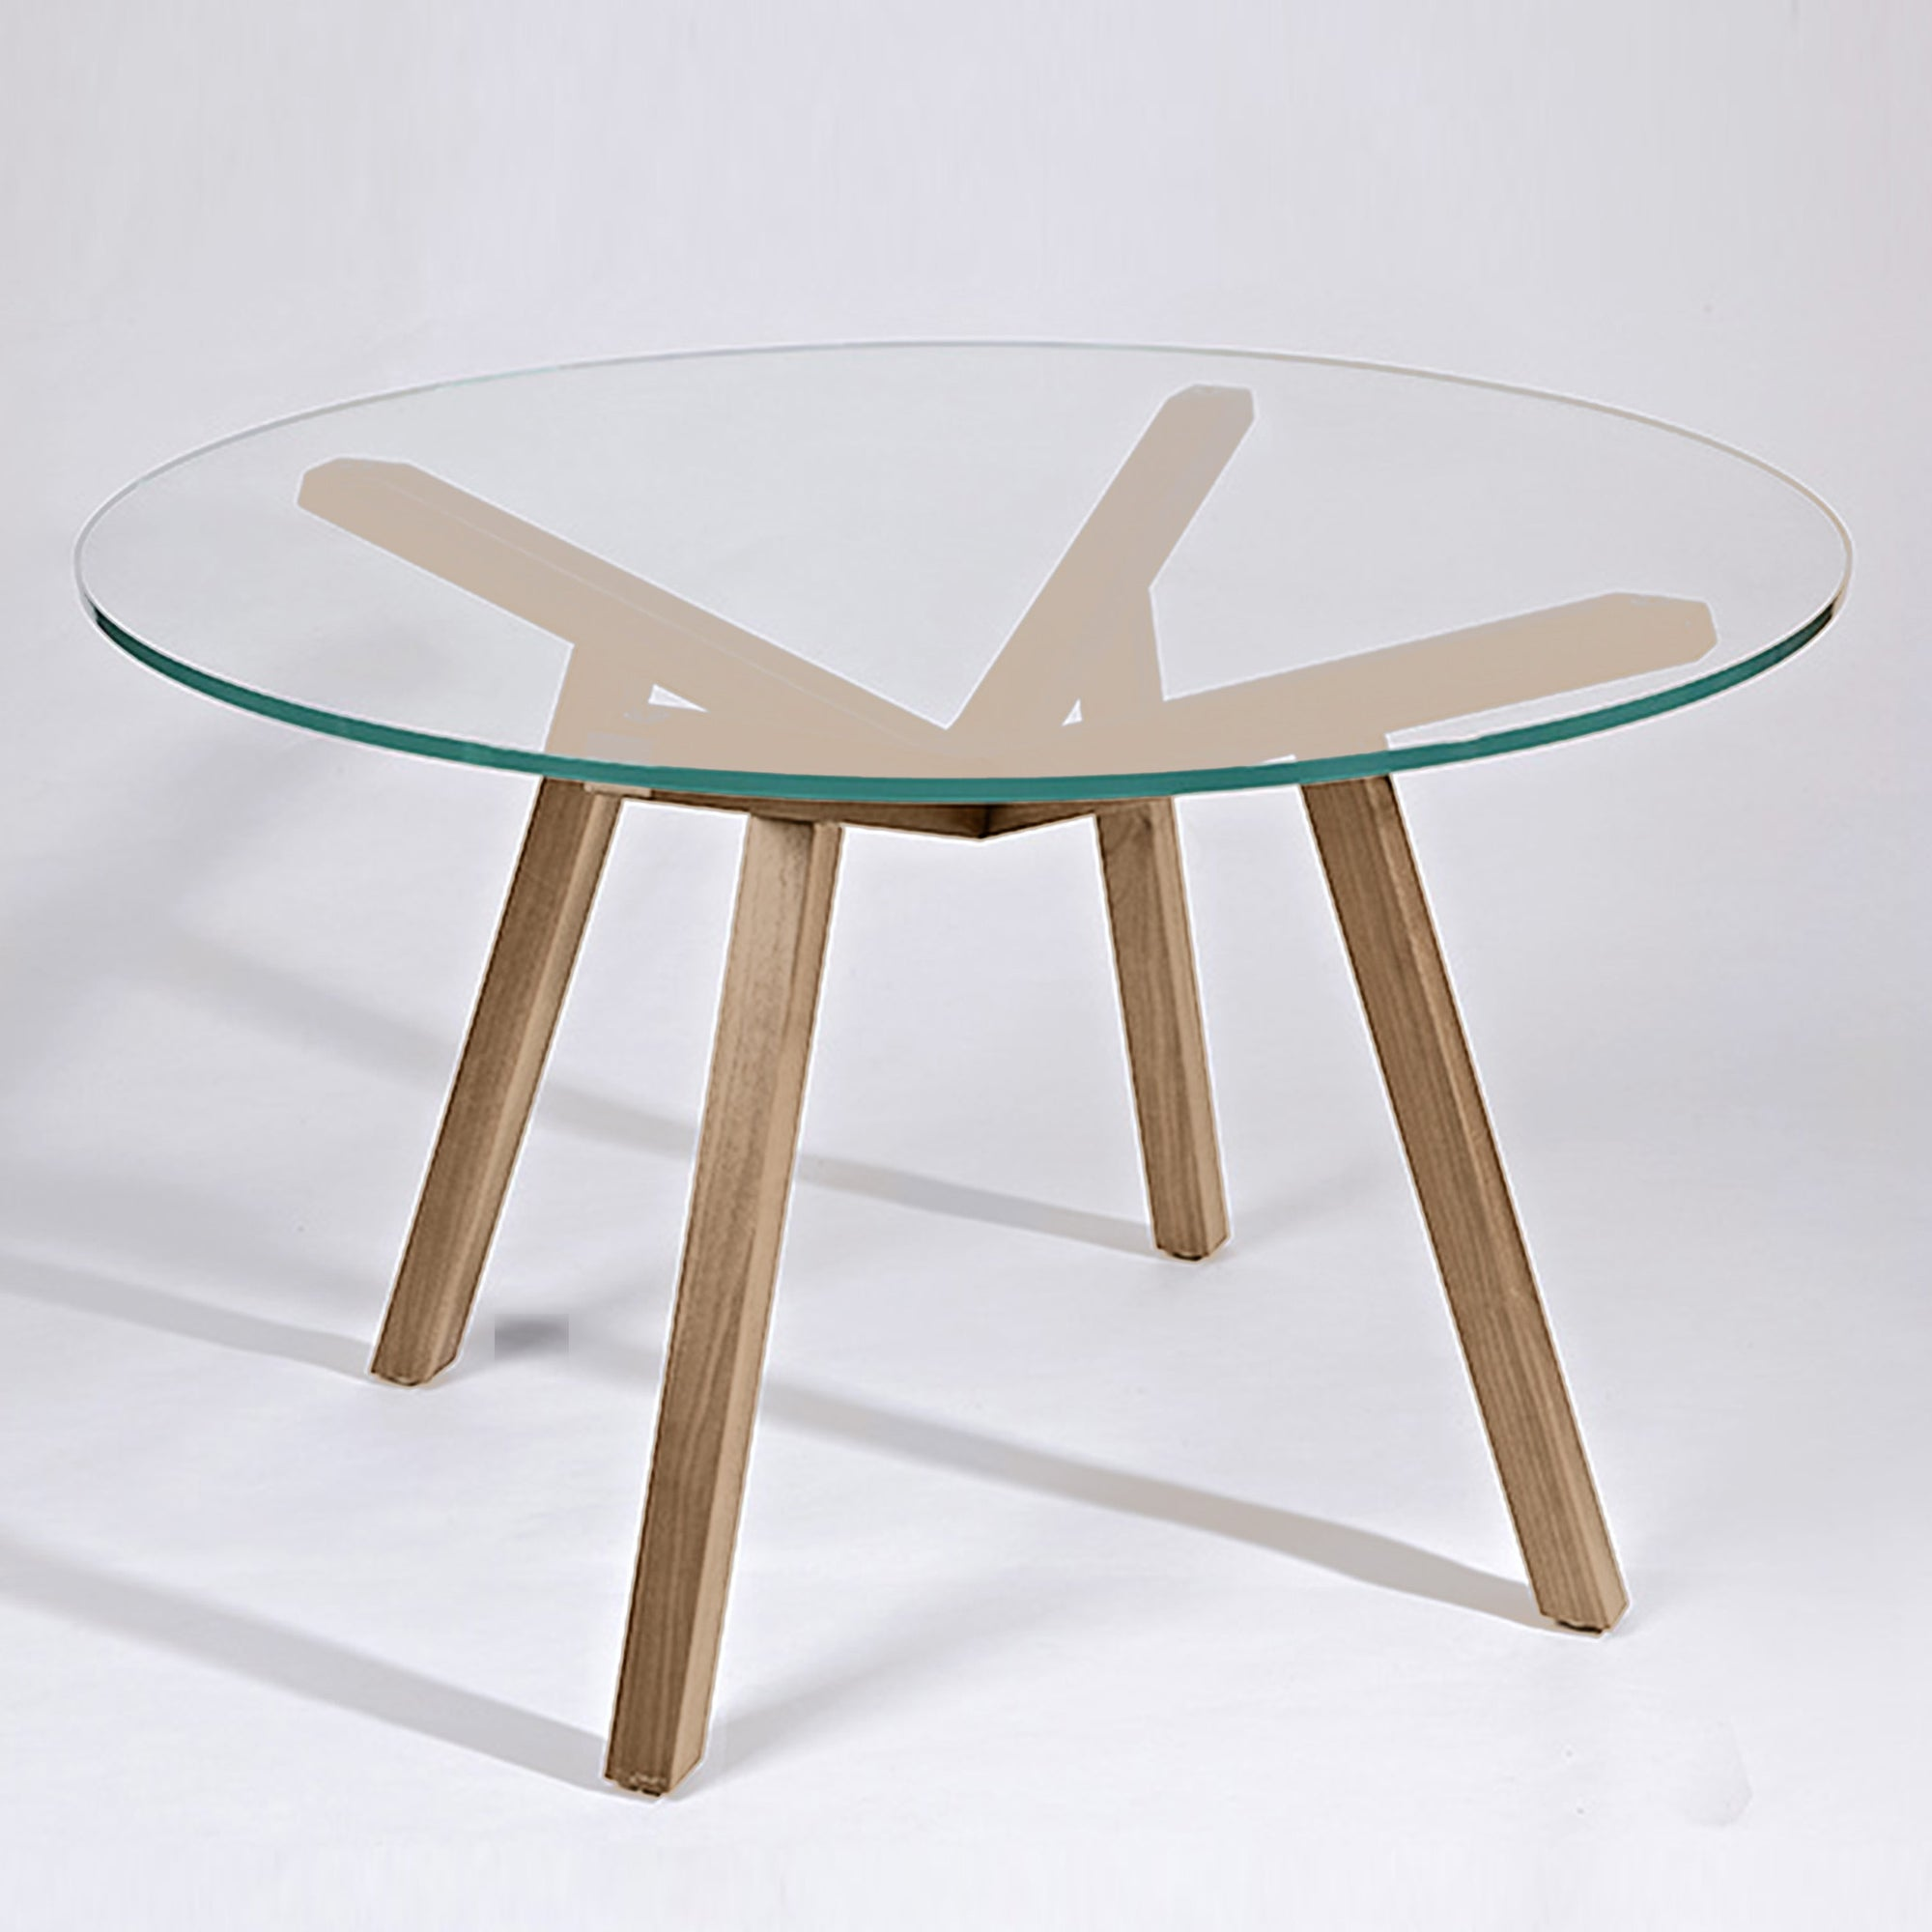 Dinning Table - Tumba Round Table 120 Cm BP6069-N